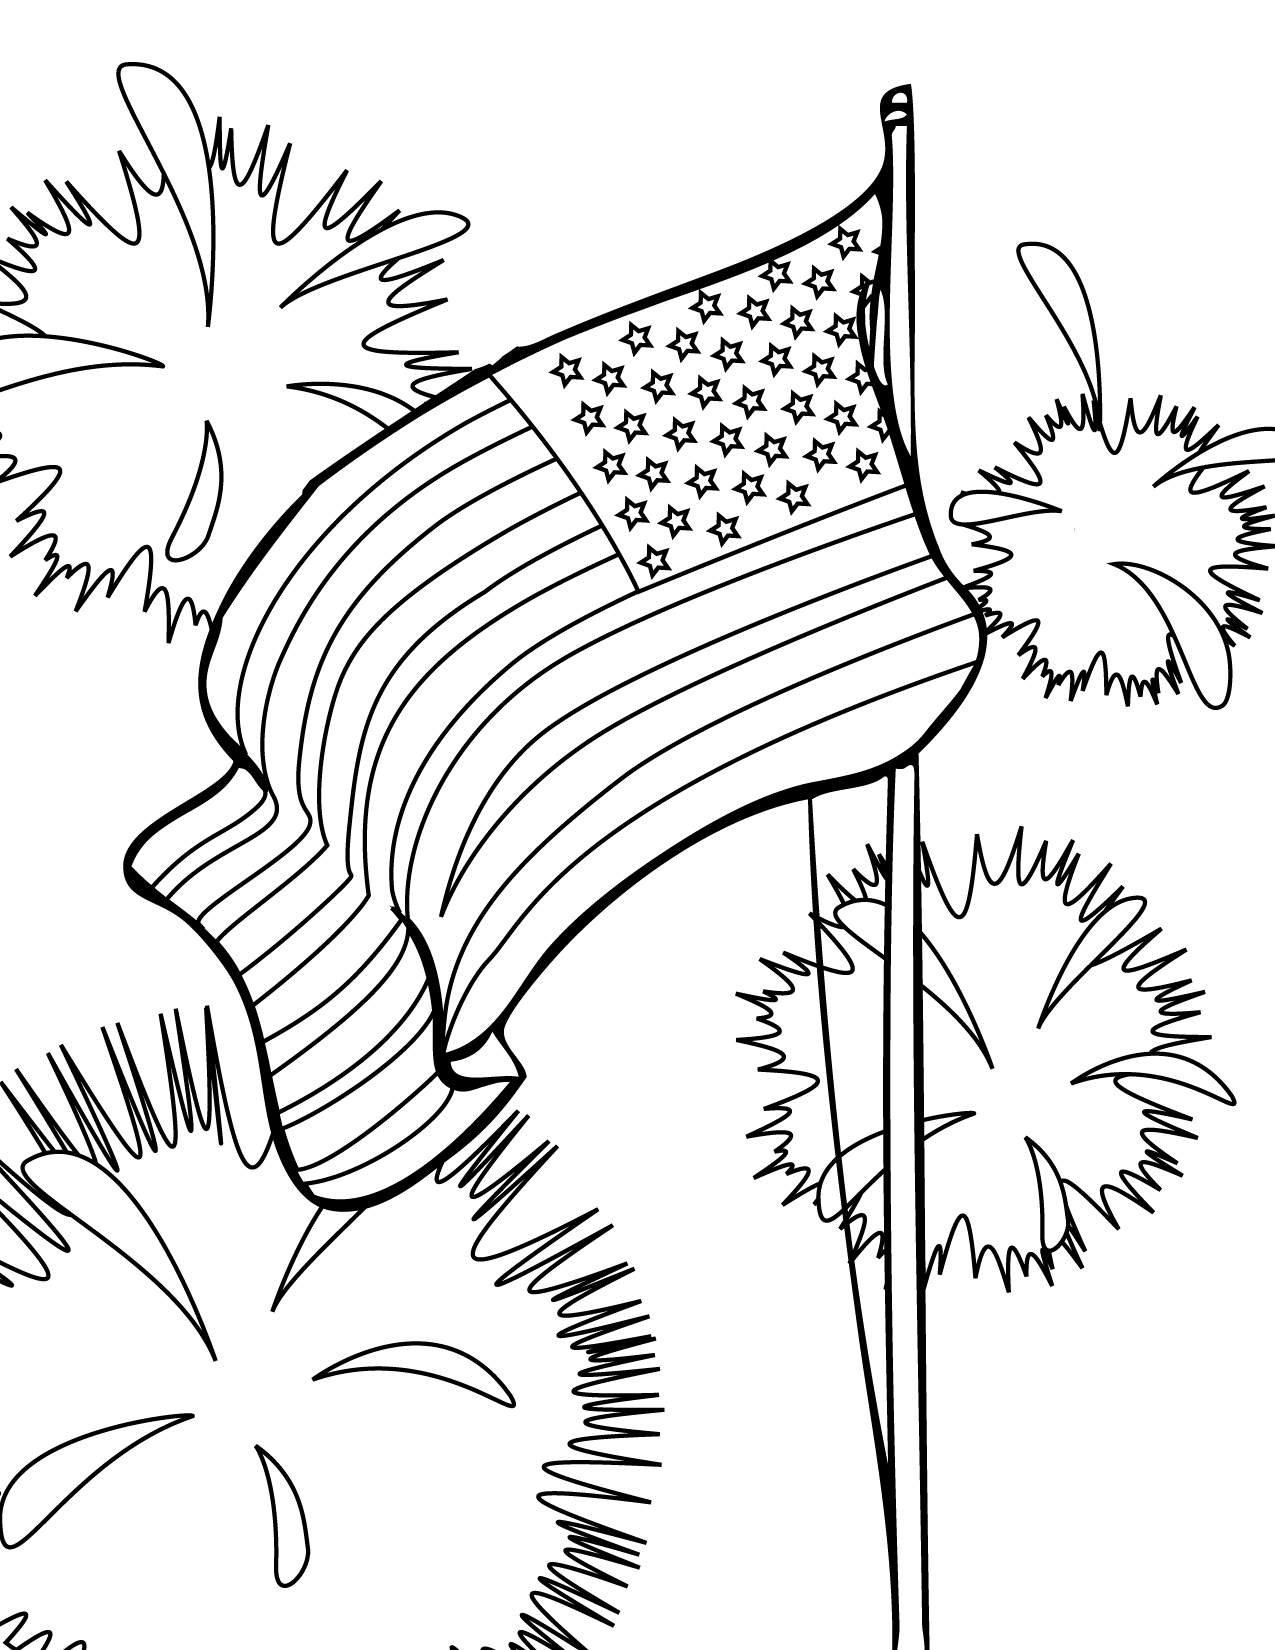 Coloring Pages 4th Of July Printable : Th of july coloring pages to print